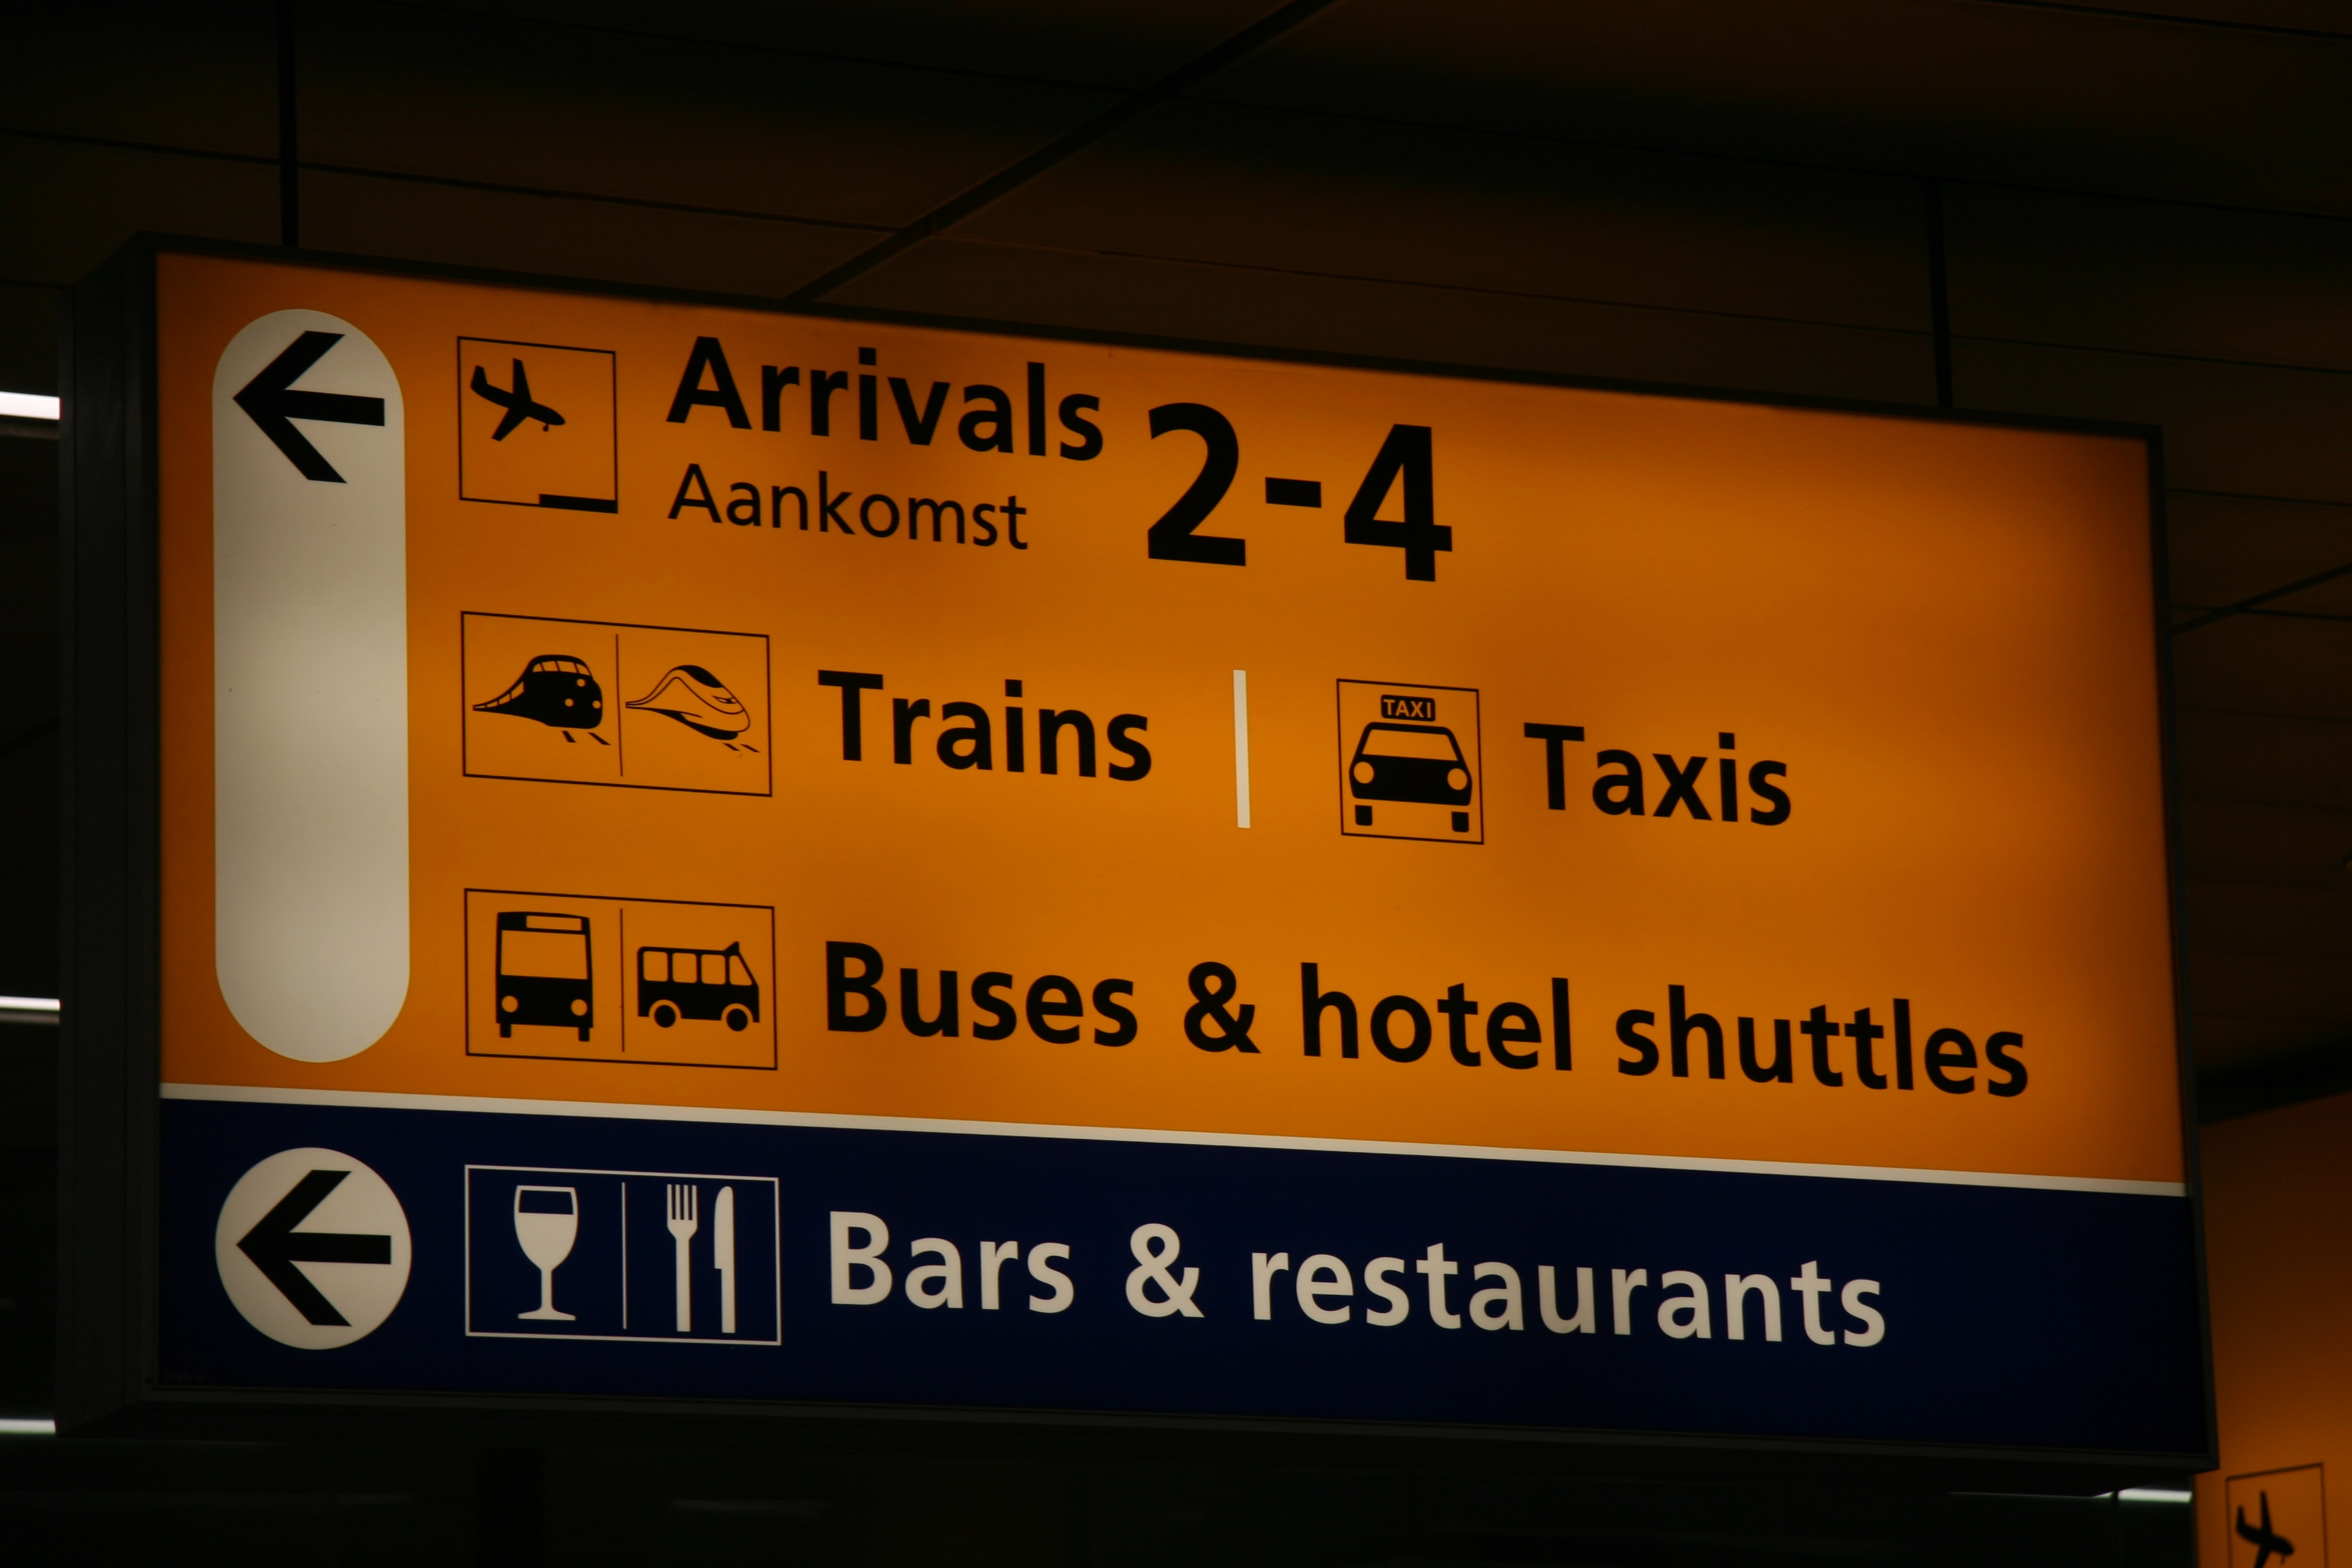 Arrival Aankokmst train and taxis signage